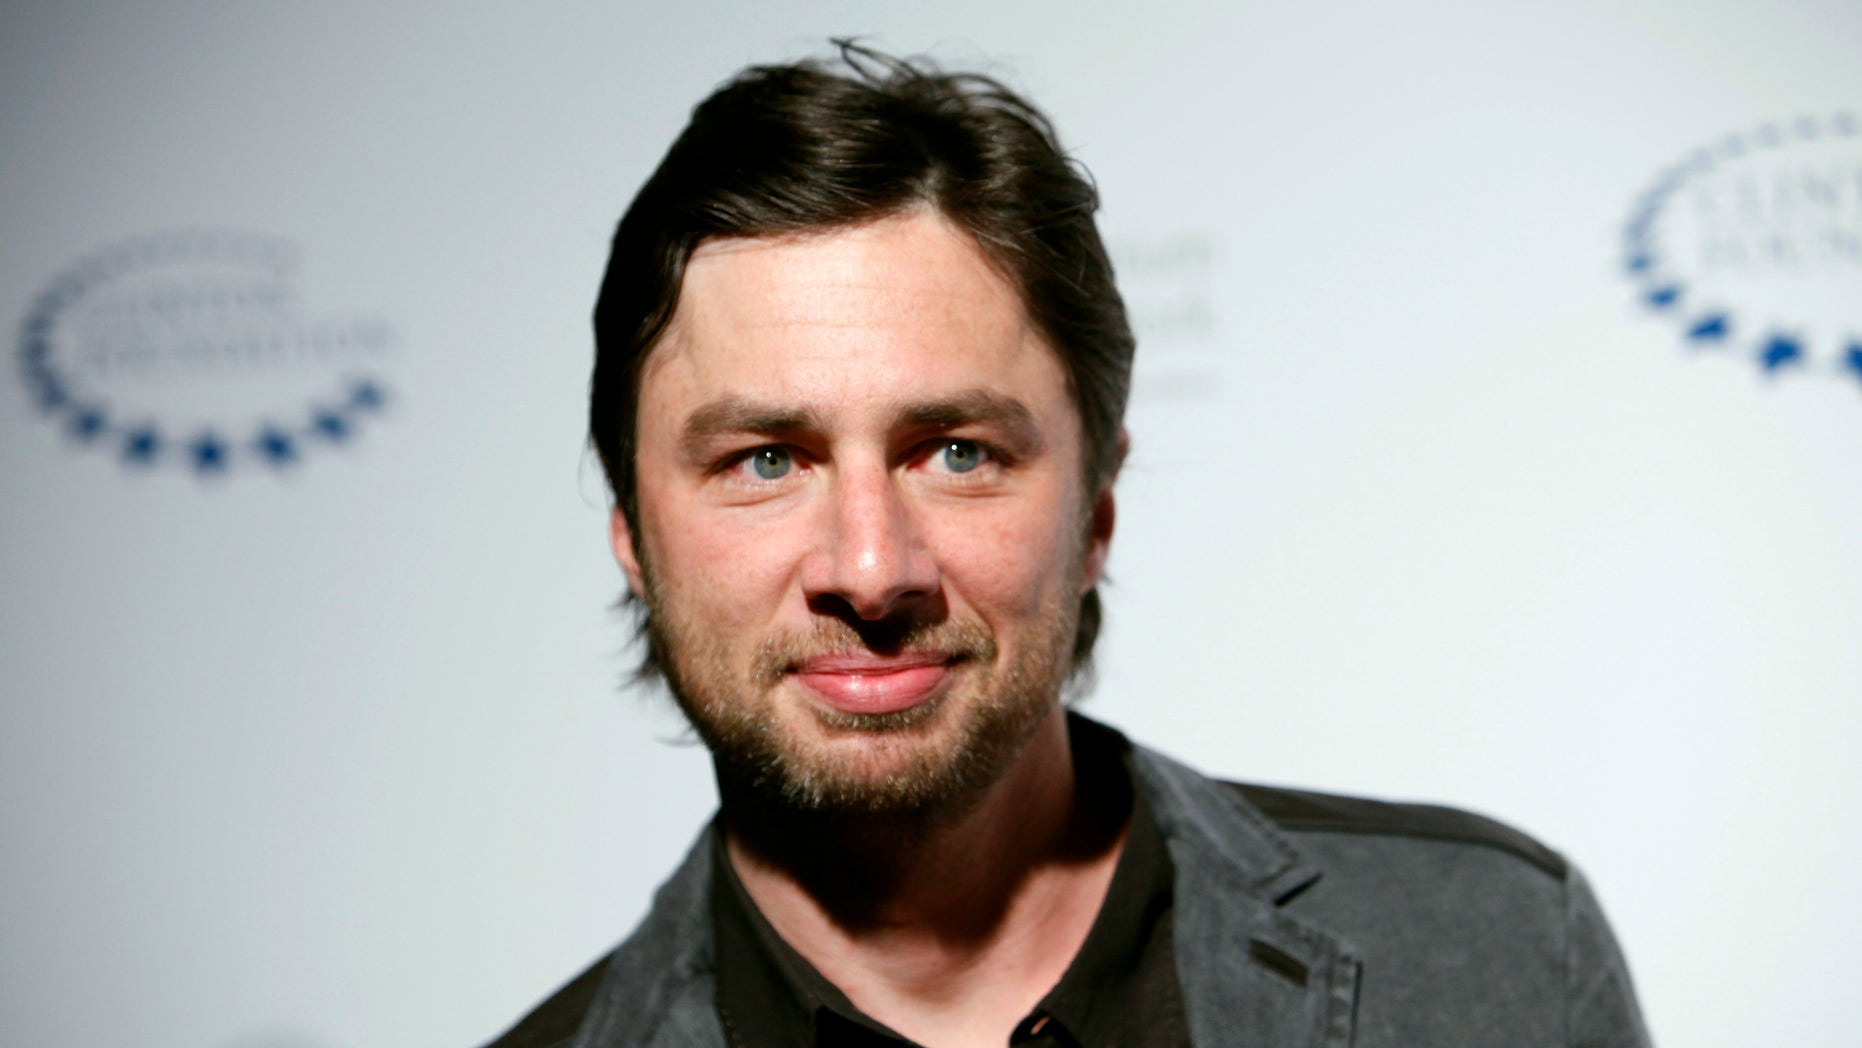 Actor Zach Braff arrives at the William J. Clinton Foundation's Millennium Network Event in Los Angeles, California April 30, 2009. REUTERS/Danny Moloshok (UNITED STATES ENTERTAINMENT POLITICS HEADSHOT) - RTXELQK